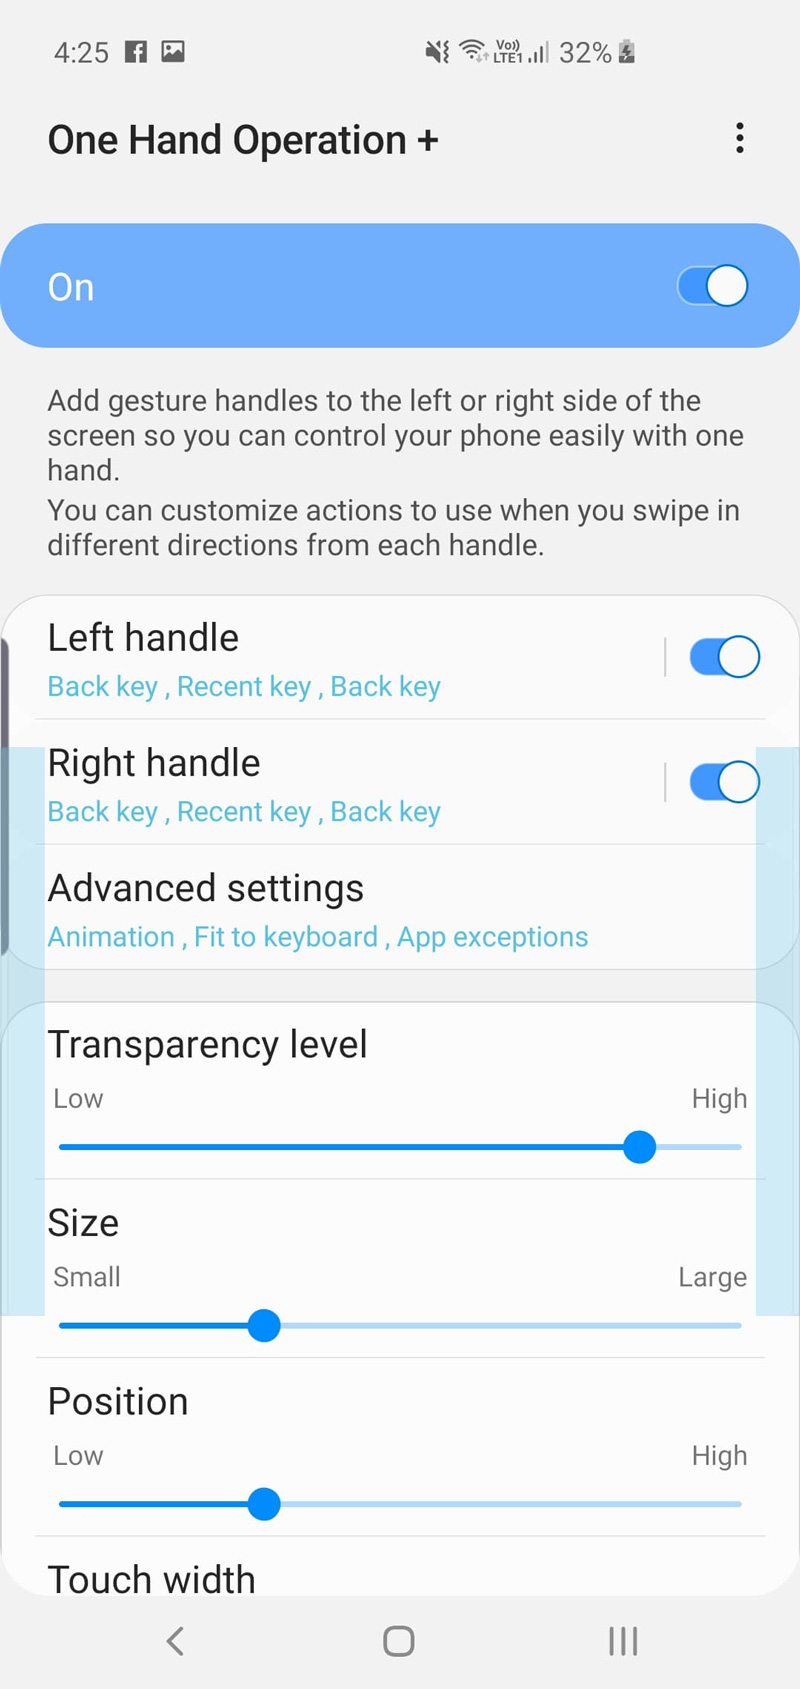 Samsung Launches New One Hand Operation+ App – Pokde